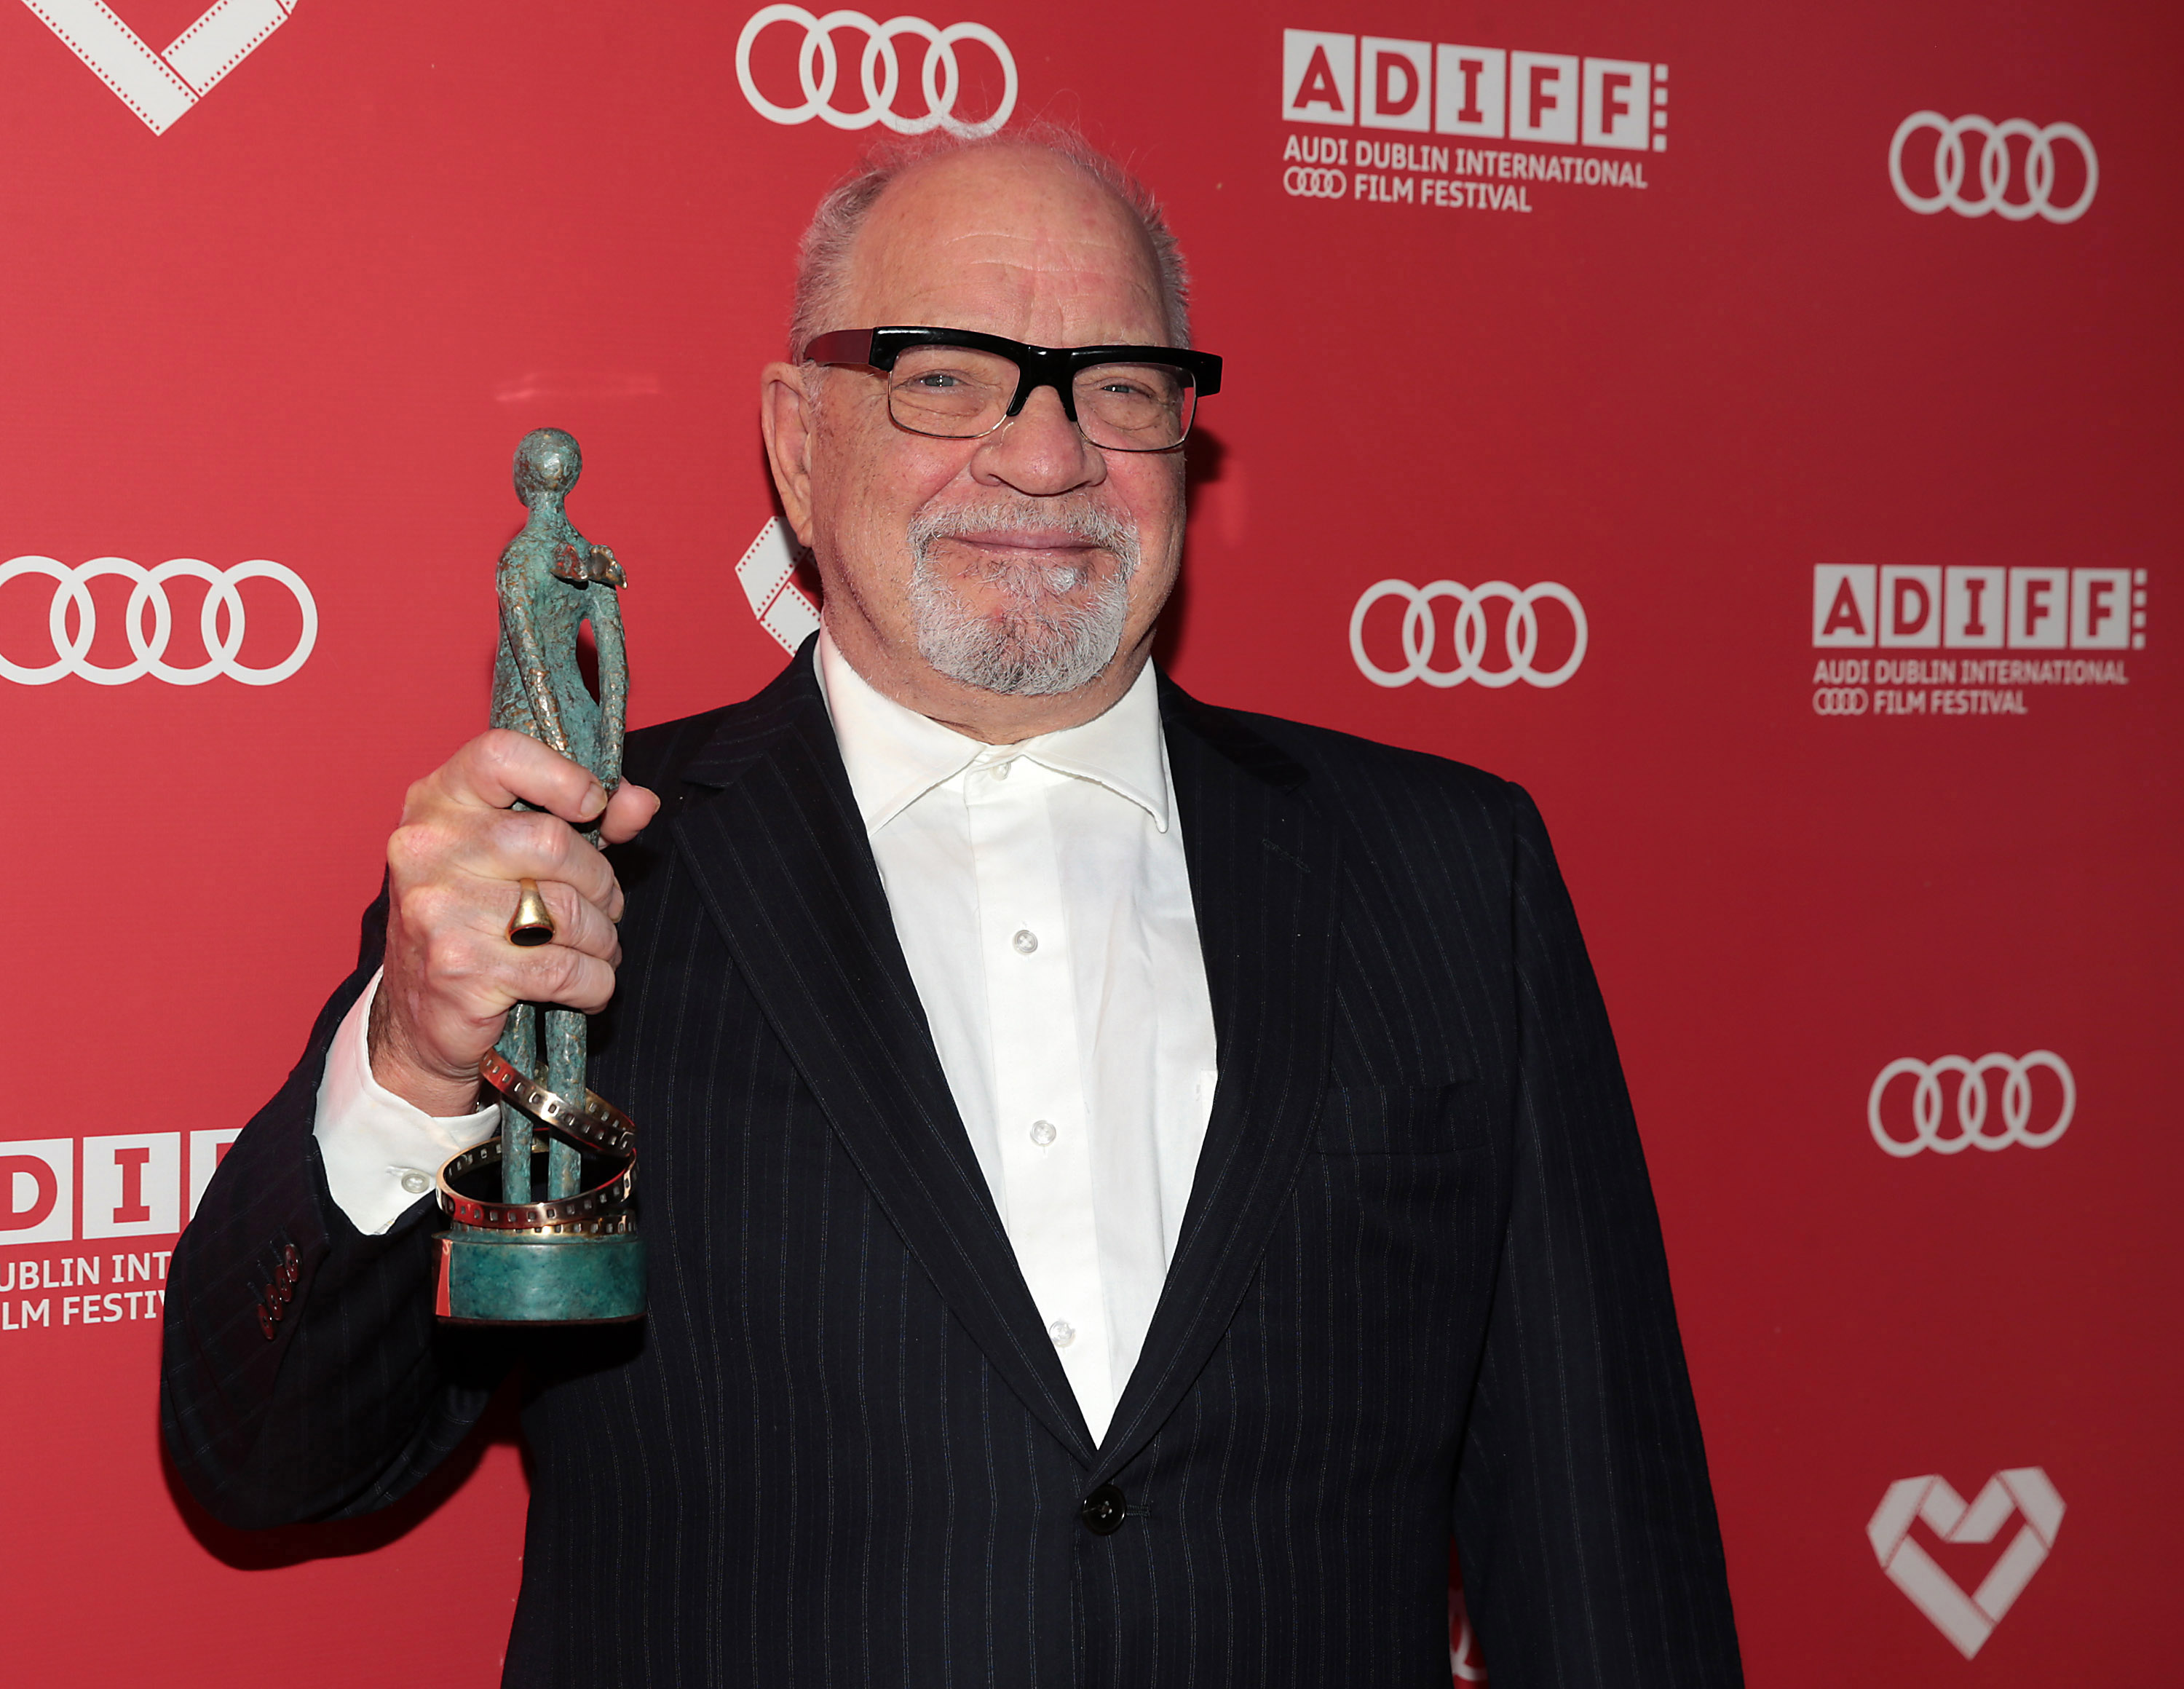 Paul Schrader with Volta Award following his Irish premiere screening of First Reformed at the Audi Dublin International Film Festival (ADIFF 2018)